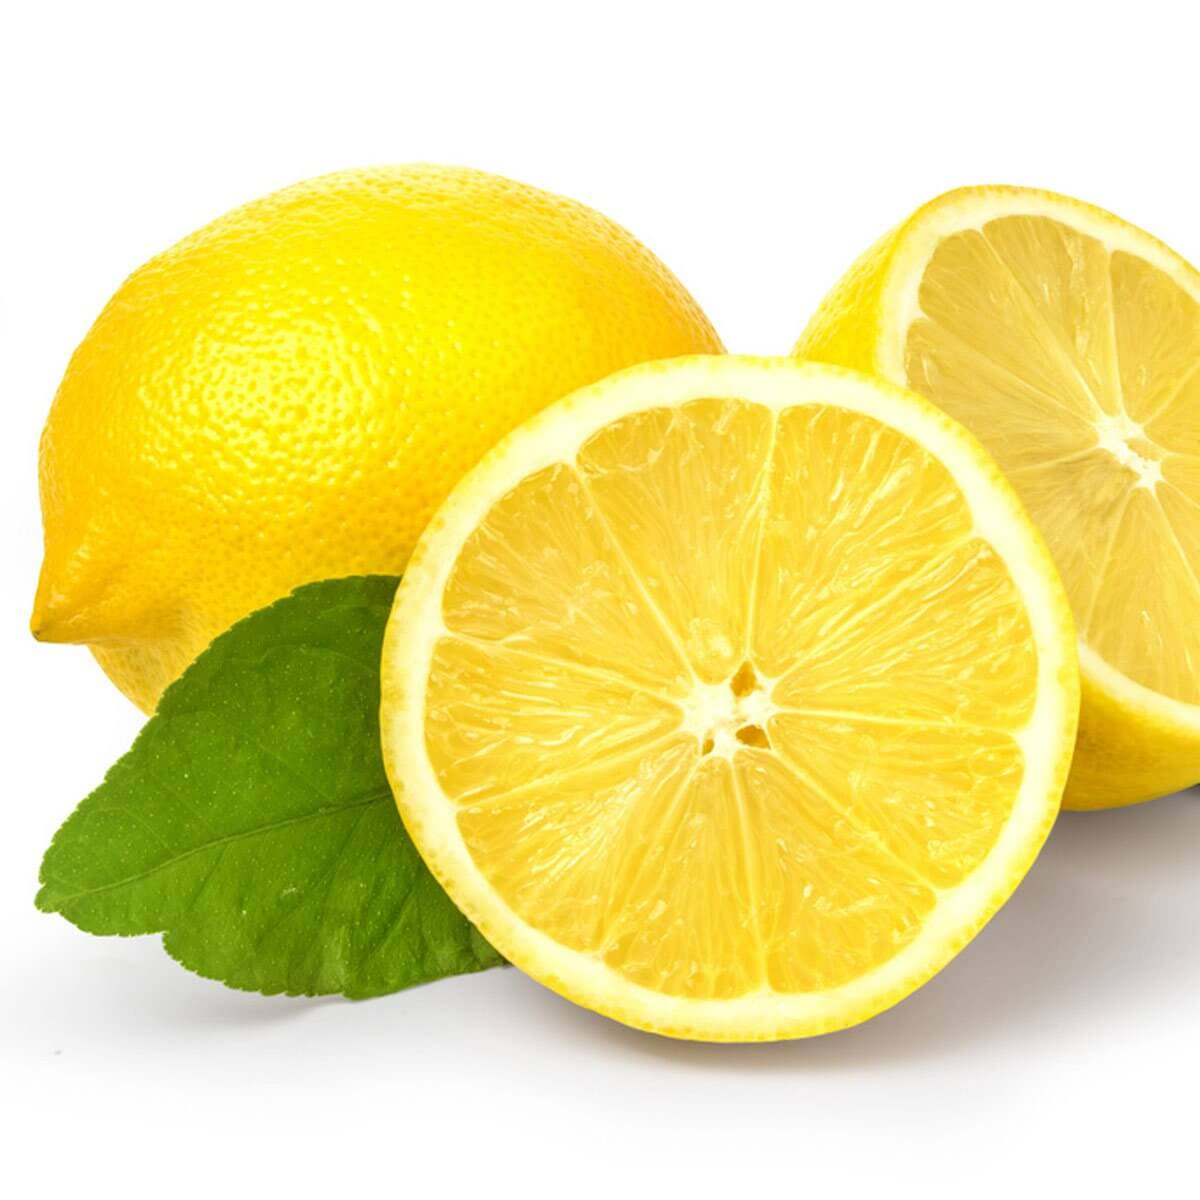 Lemon Home Remedies For Food Poisoning